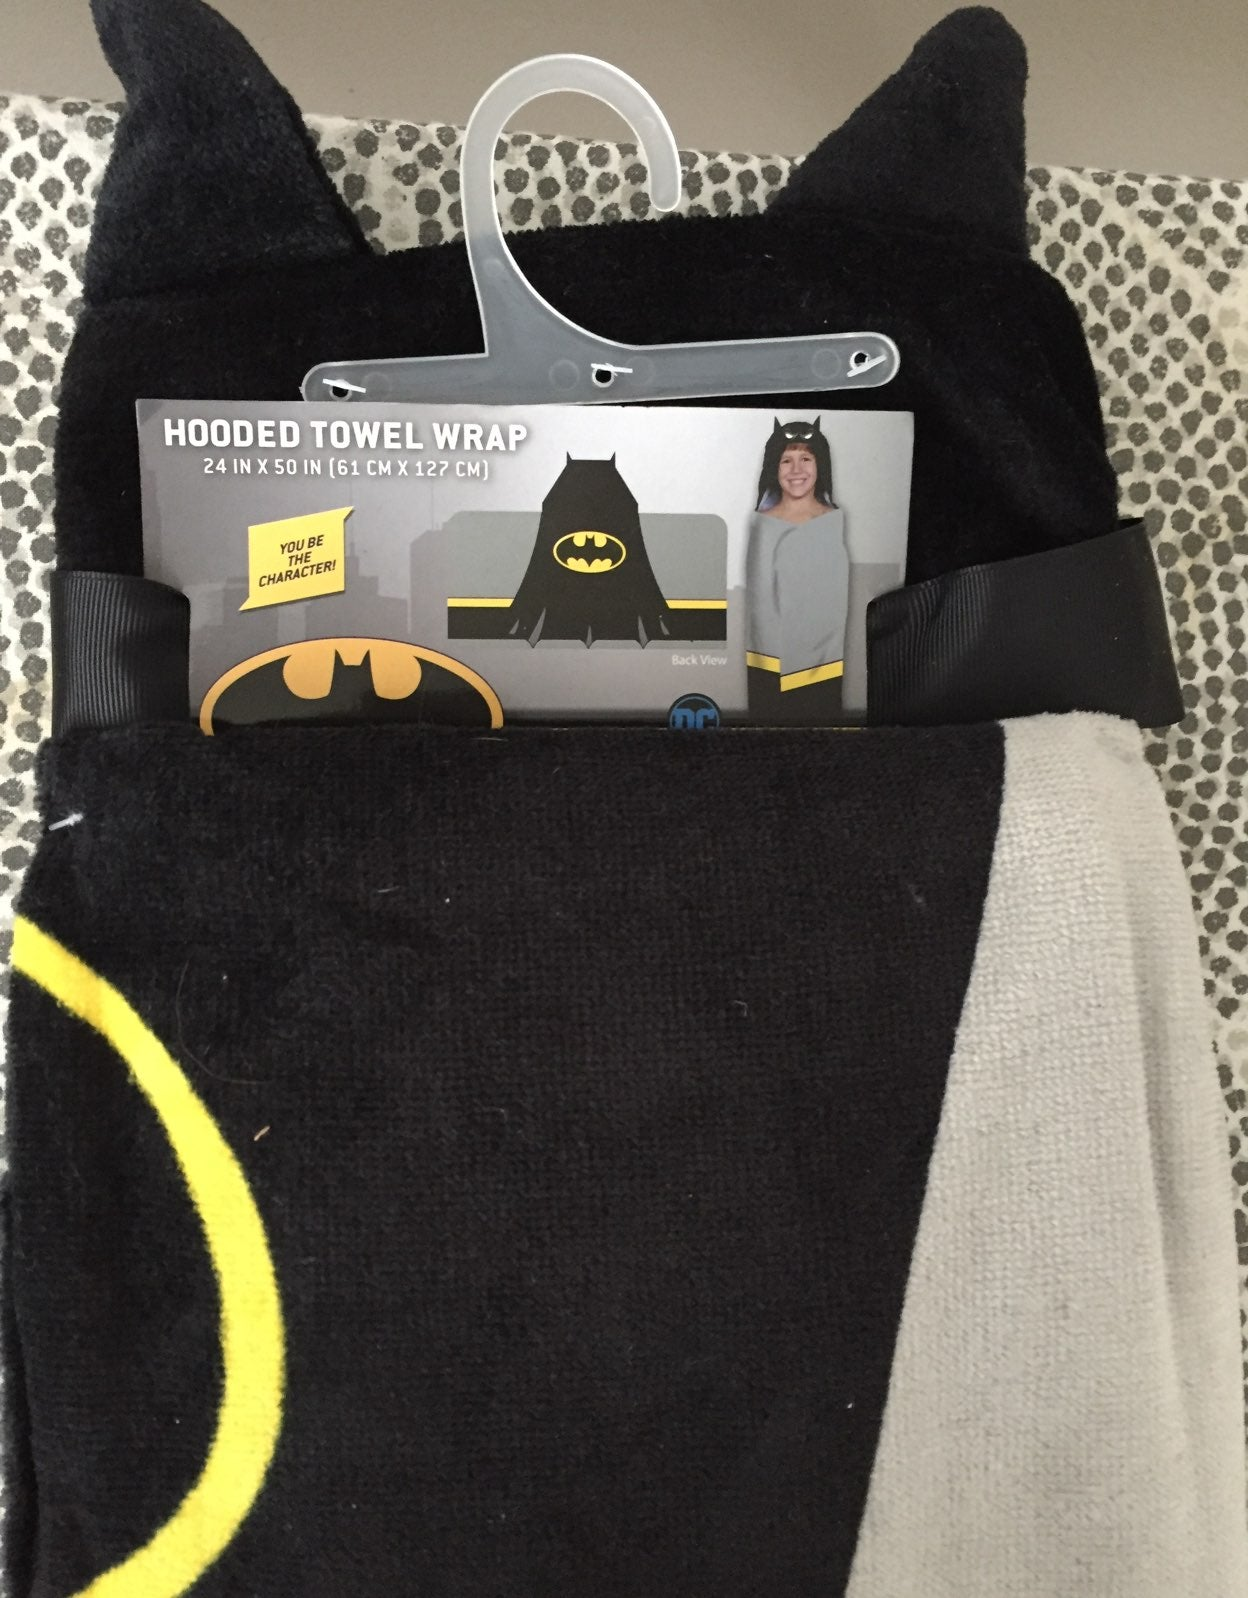 Batman hooded Towel Wrap NWT